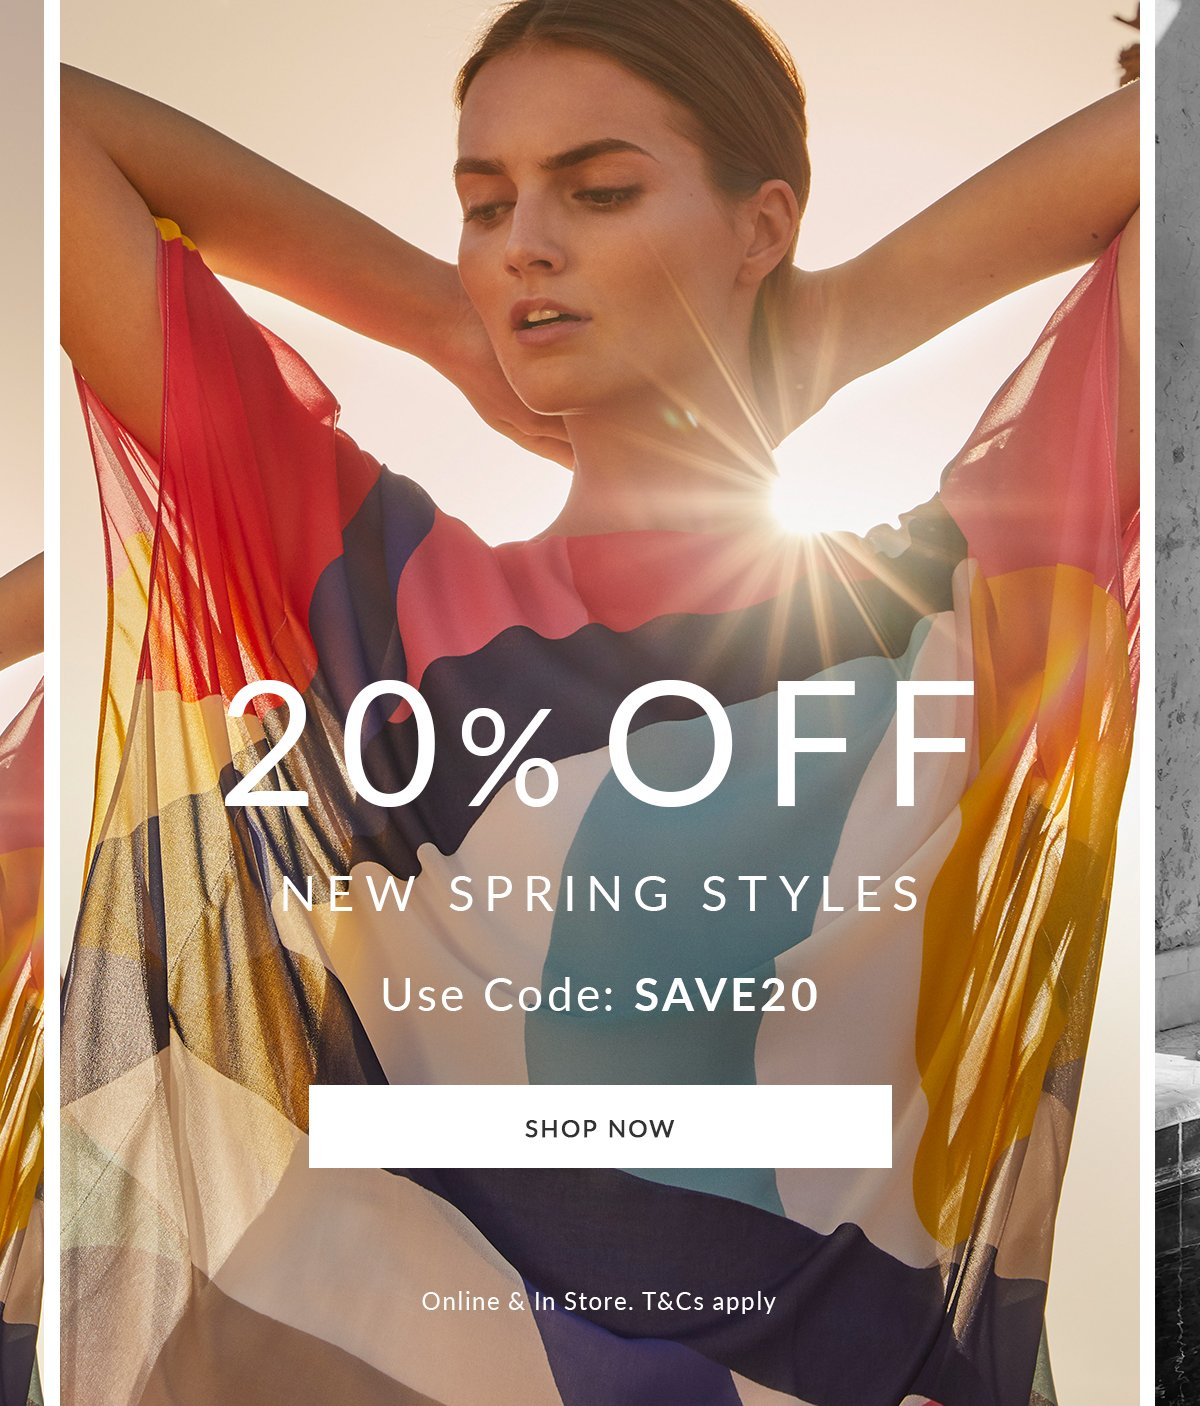 20% off new spring styles | use code: SAVE20 | Shop Now